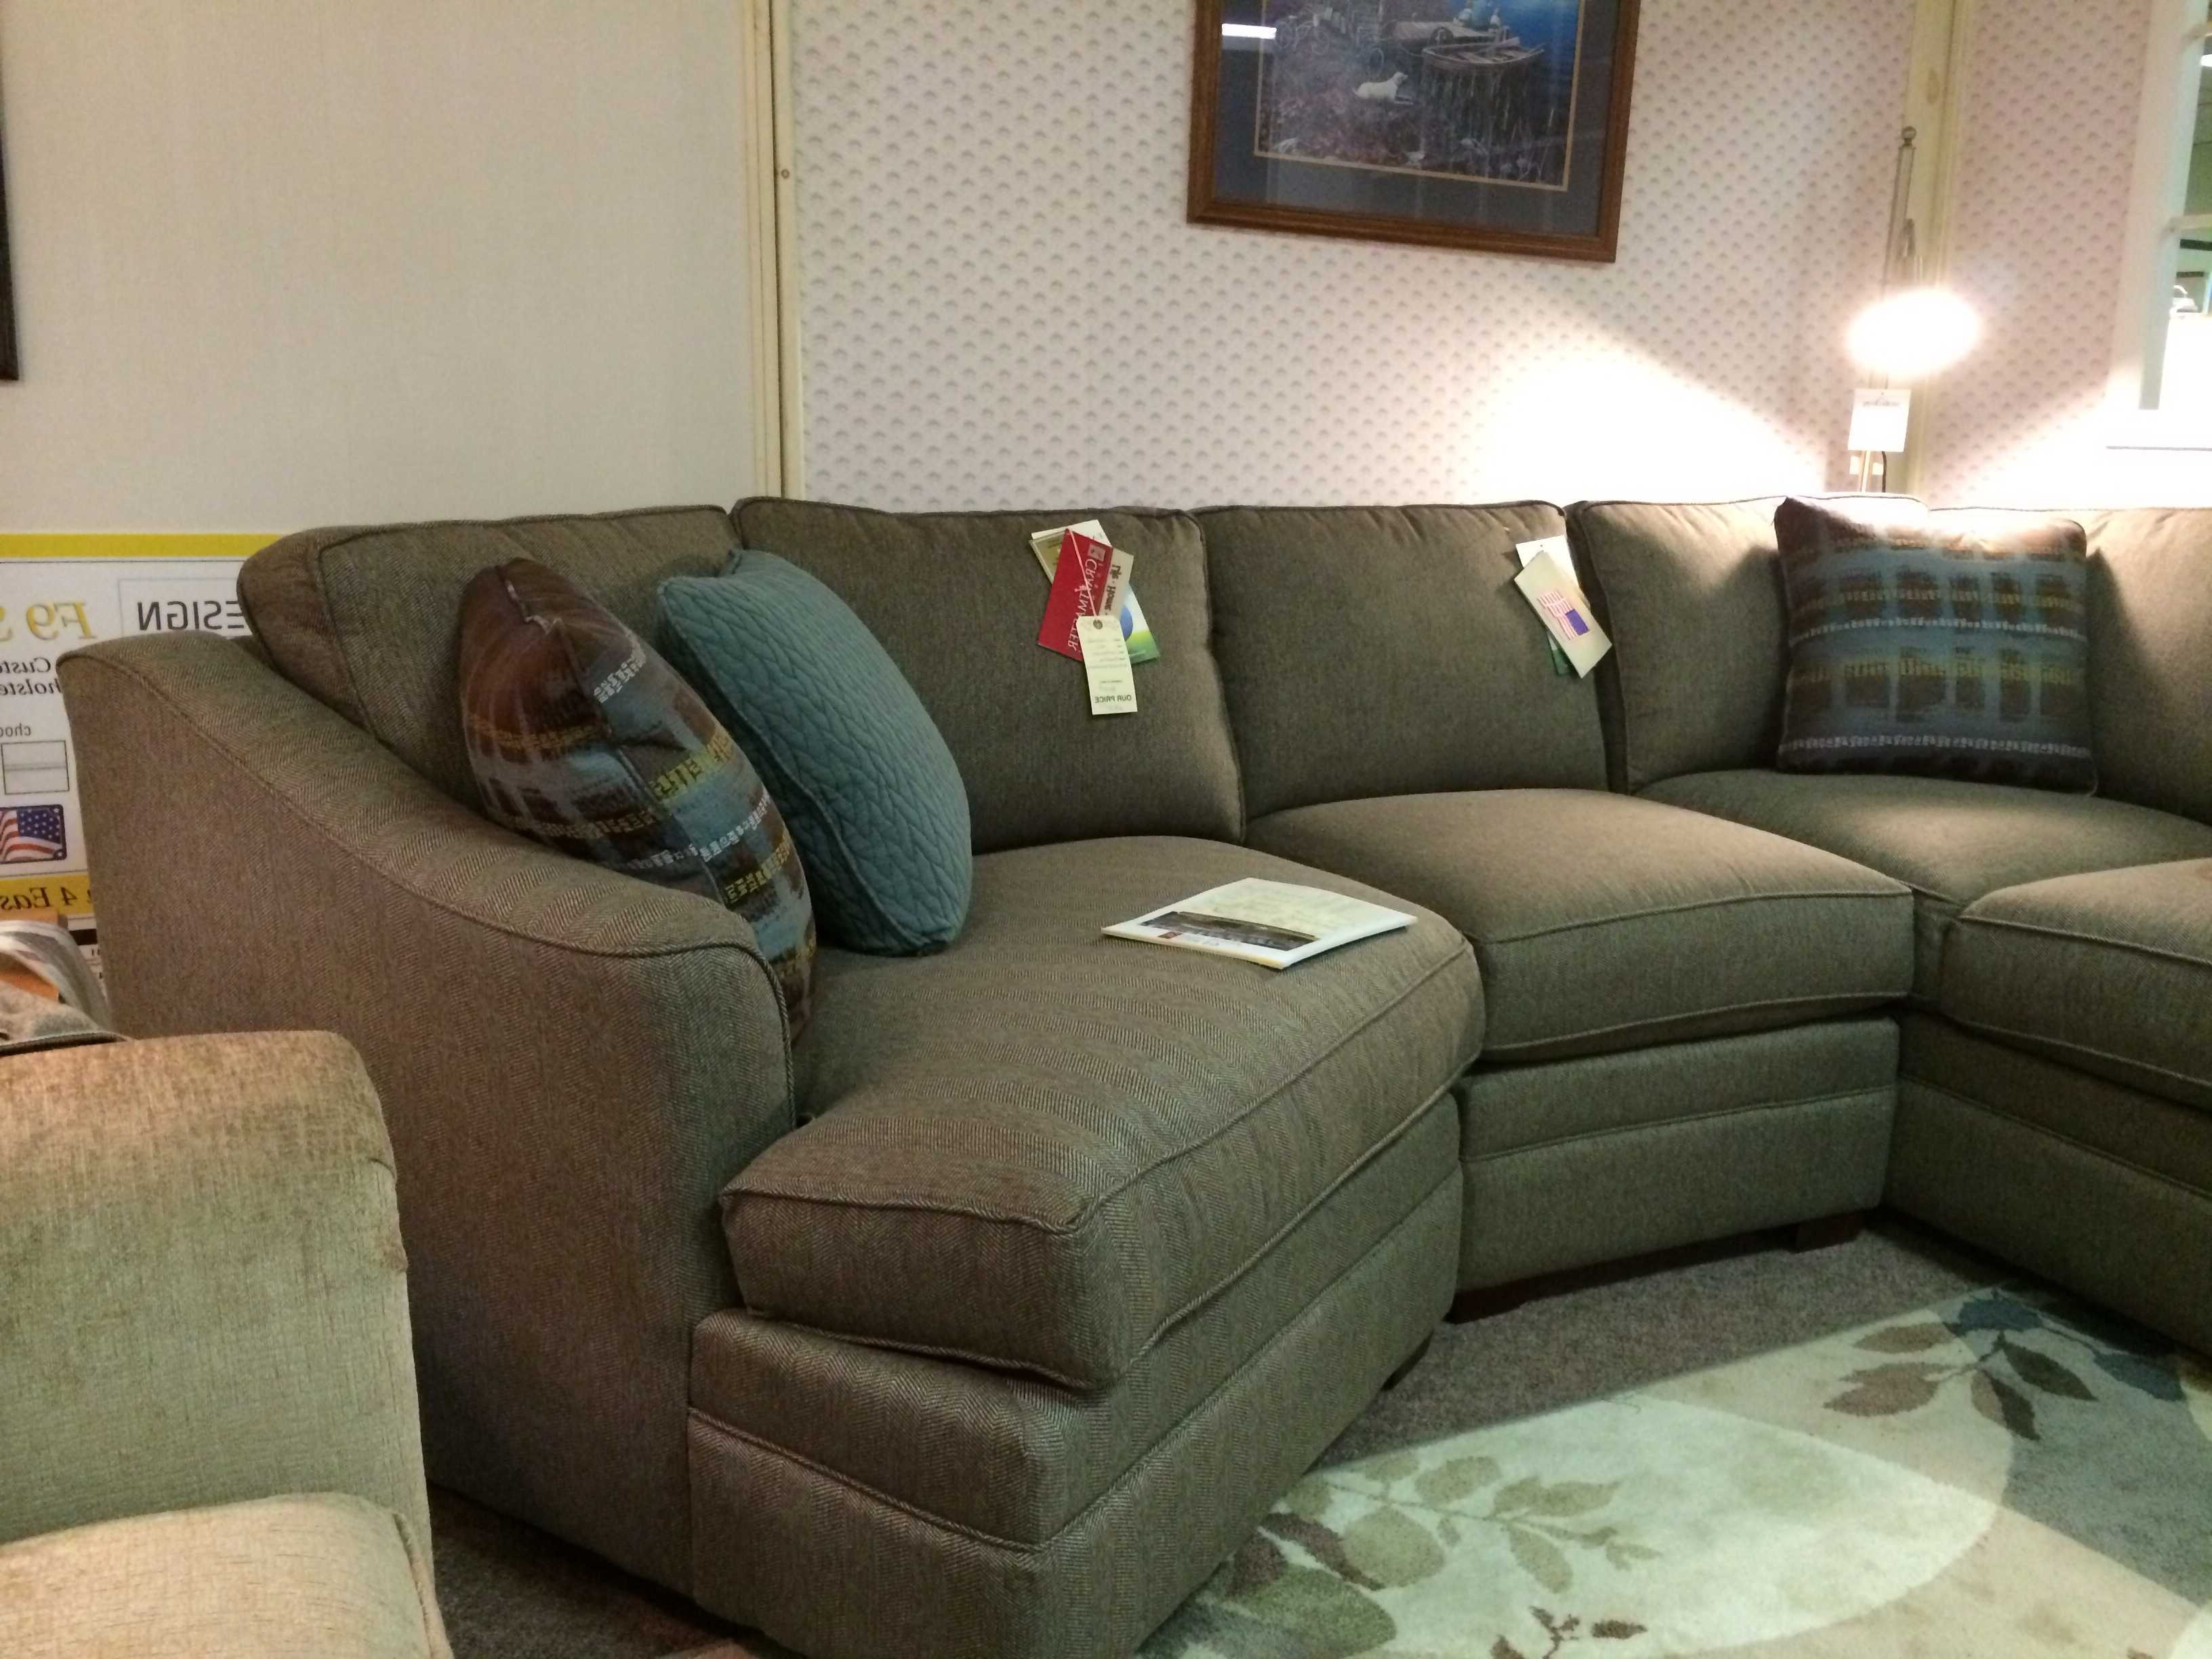 Awesome Sectional Sofa With Cuddler Chaise Also Ideas ~ Eduquin Inside 2017 Sectionals With Cuddler And Chaise (View 5 of 15)